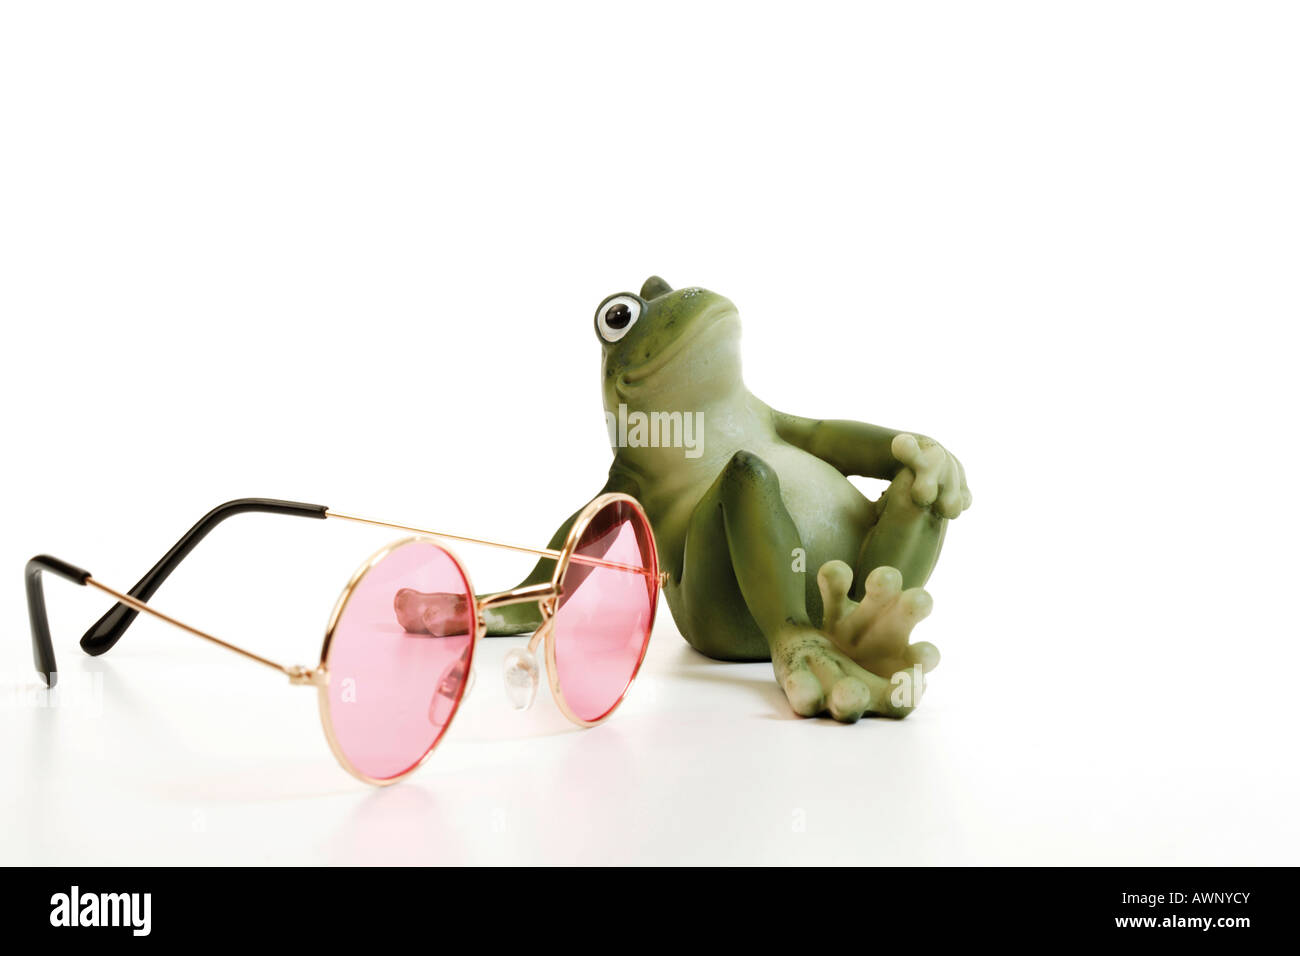 Frog and rose-coloured glasses Stock Photo